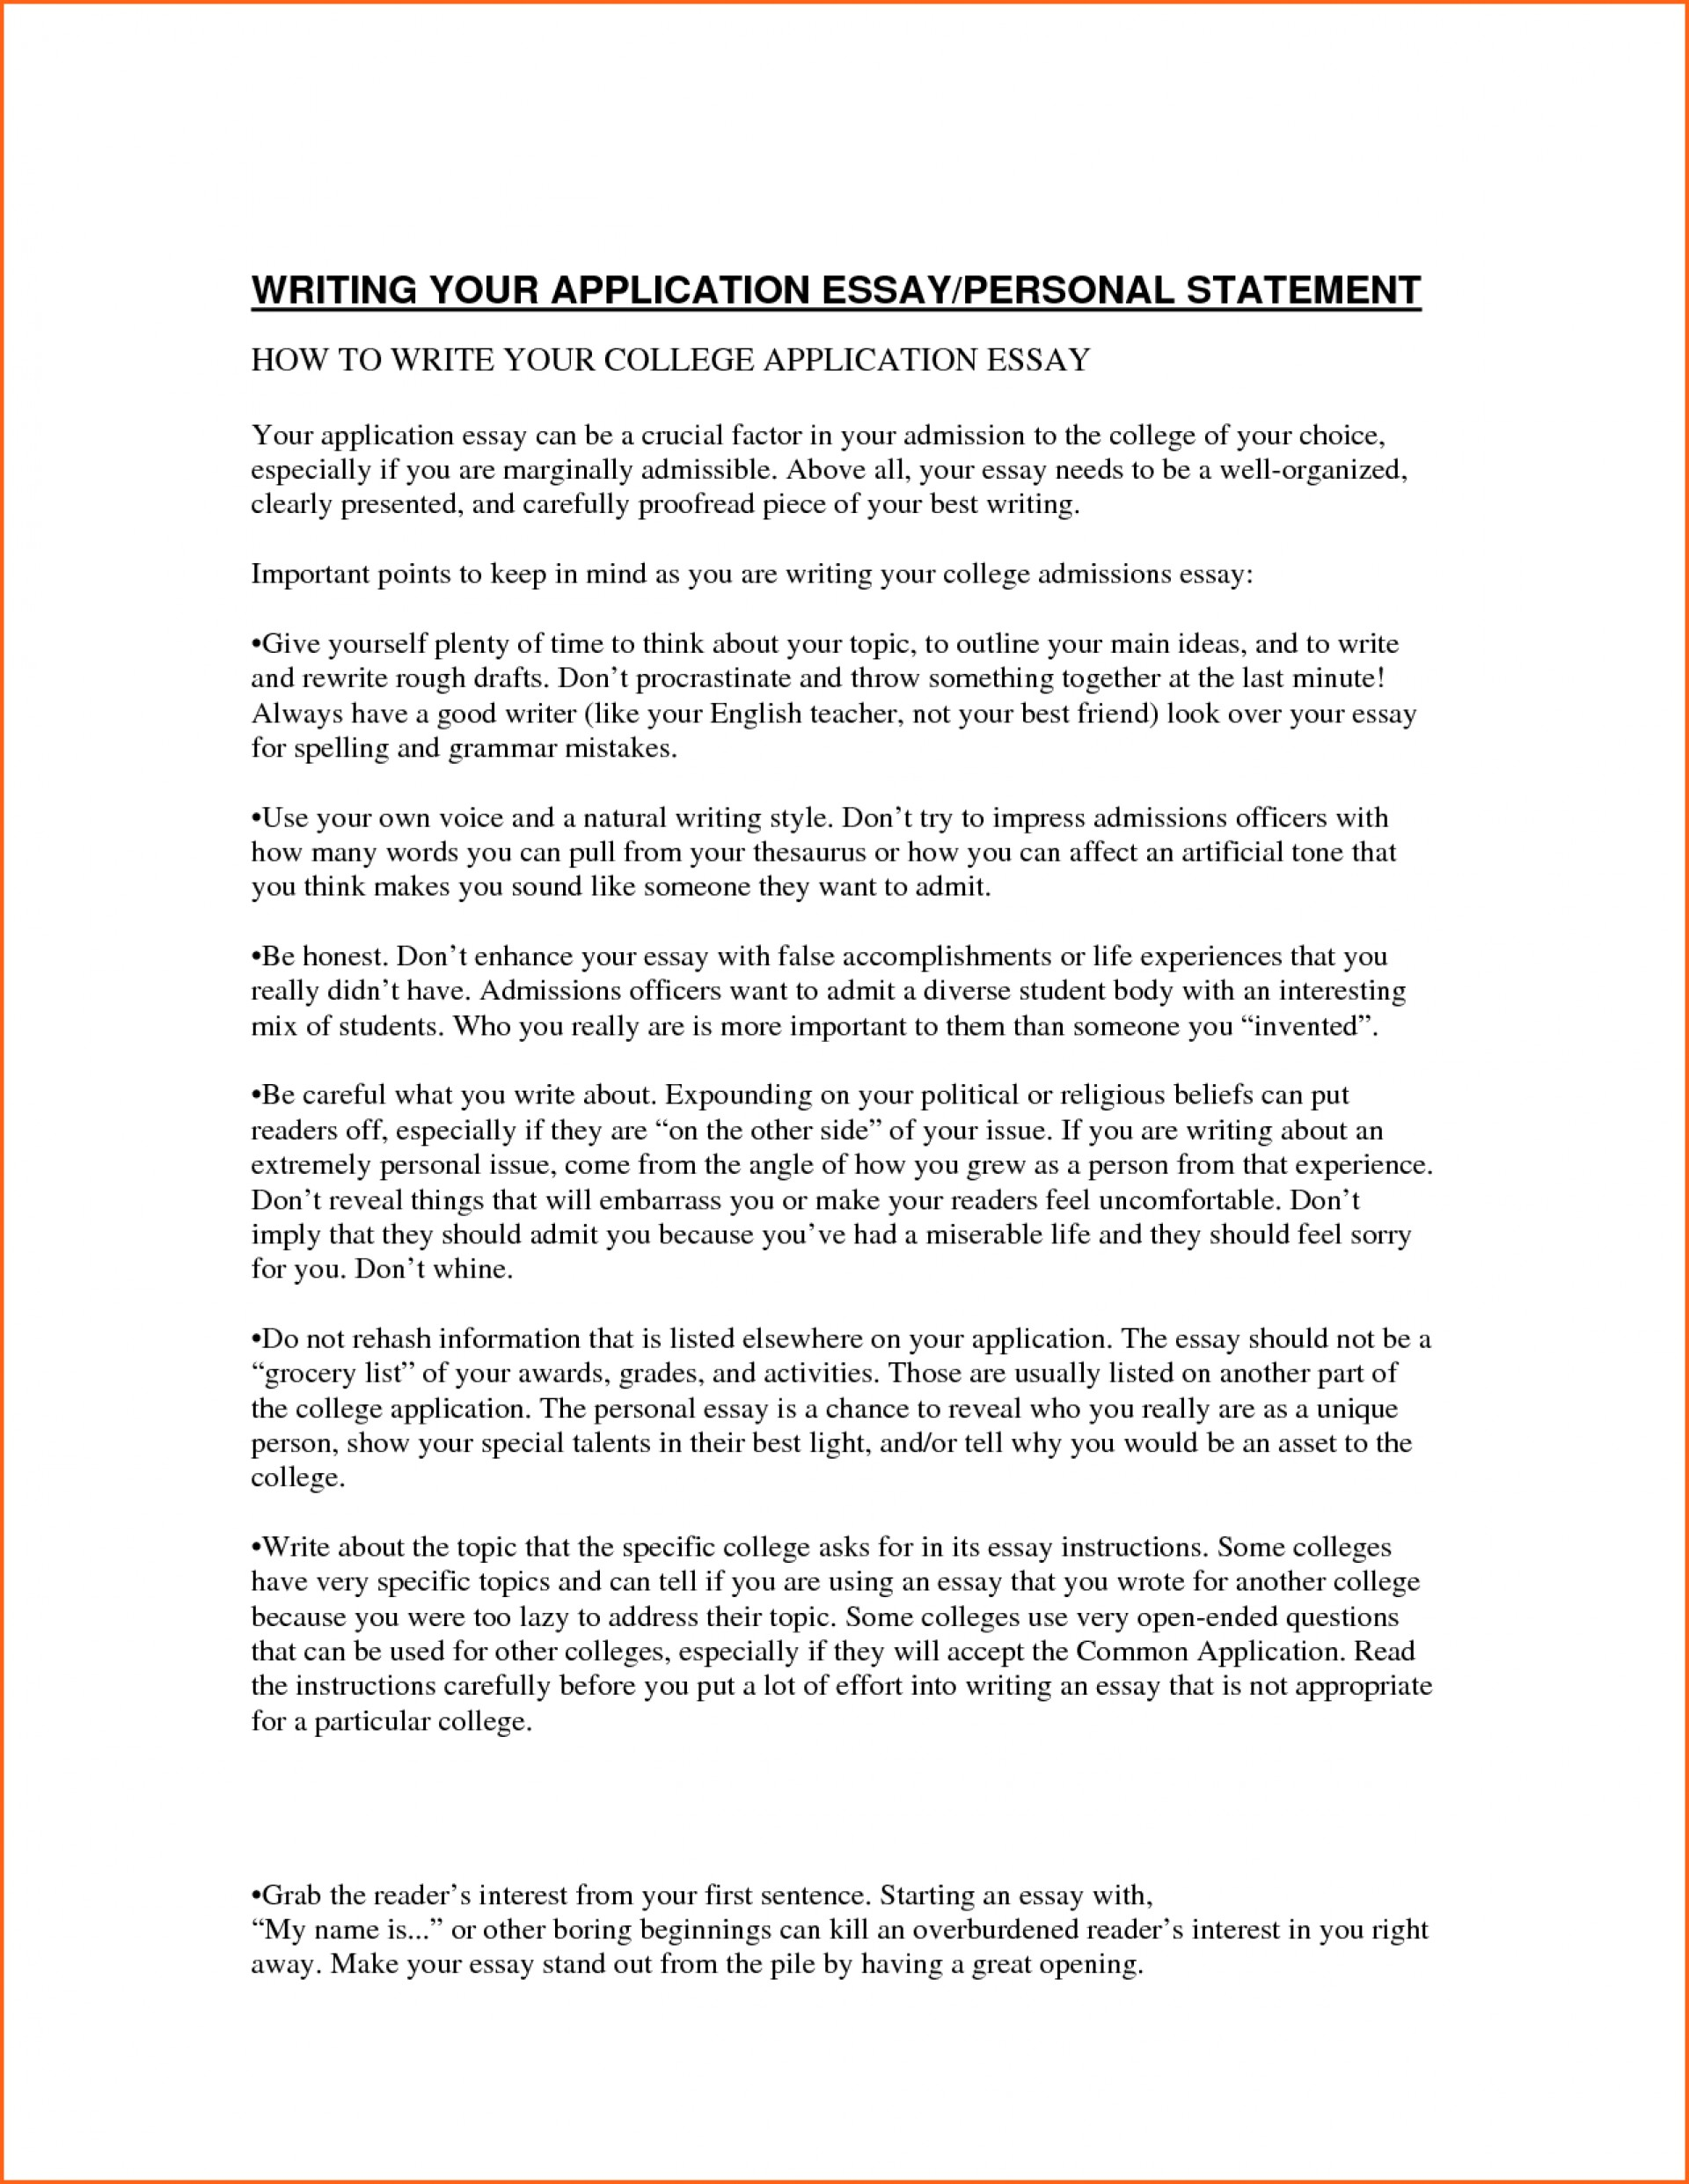 003 Essay Example Website That Writes Essays For Wonderful You Yahoo Answers Can Write 1920